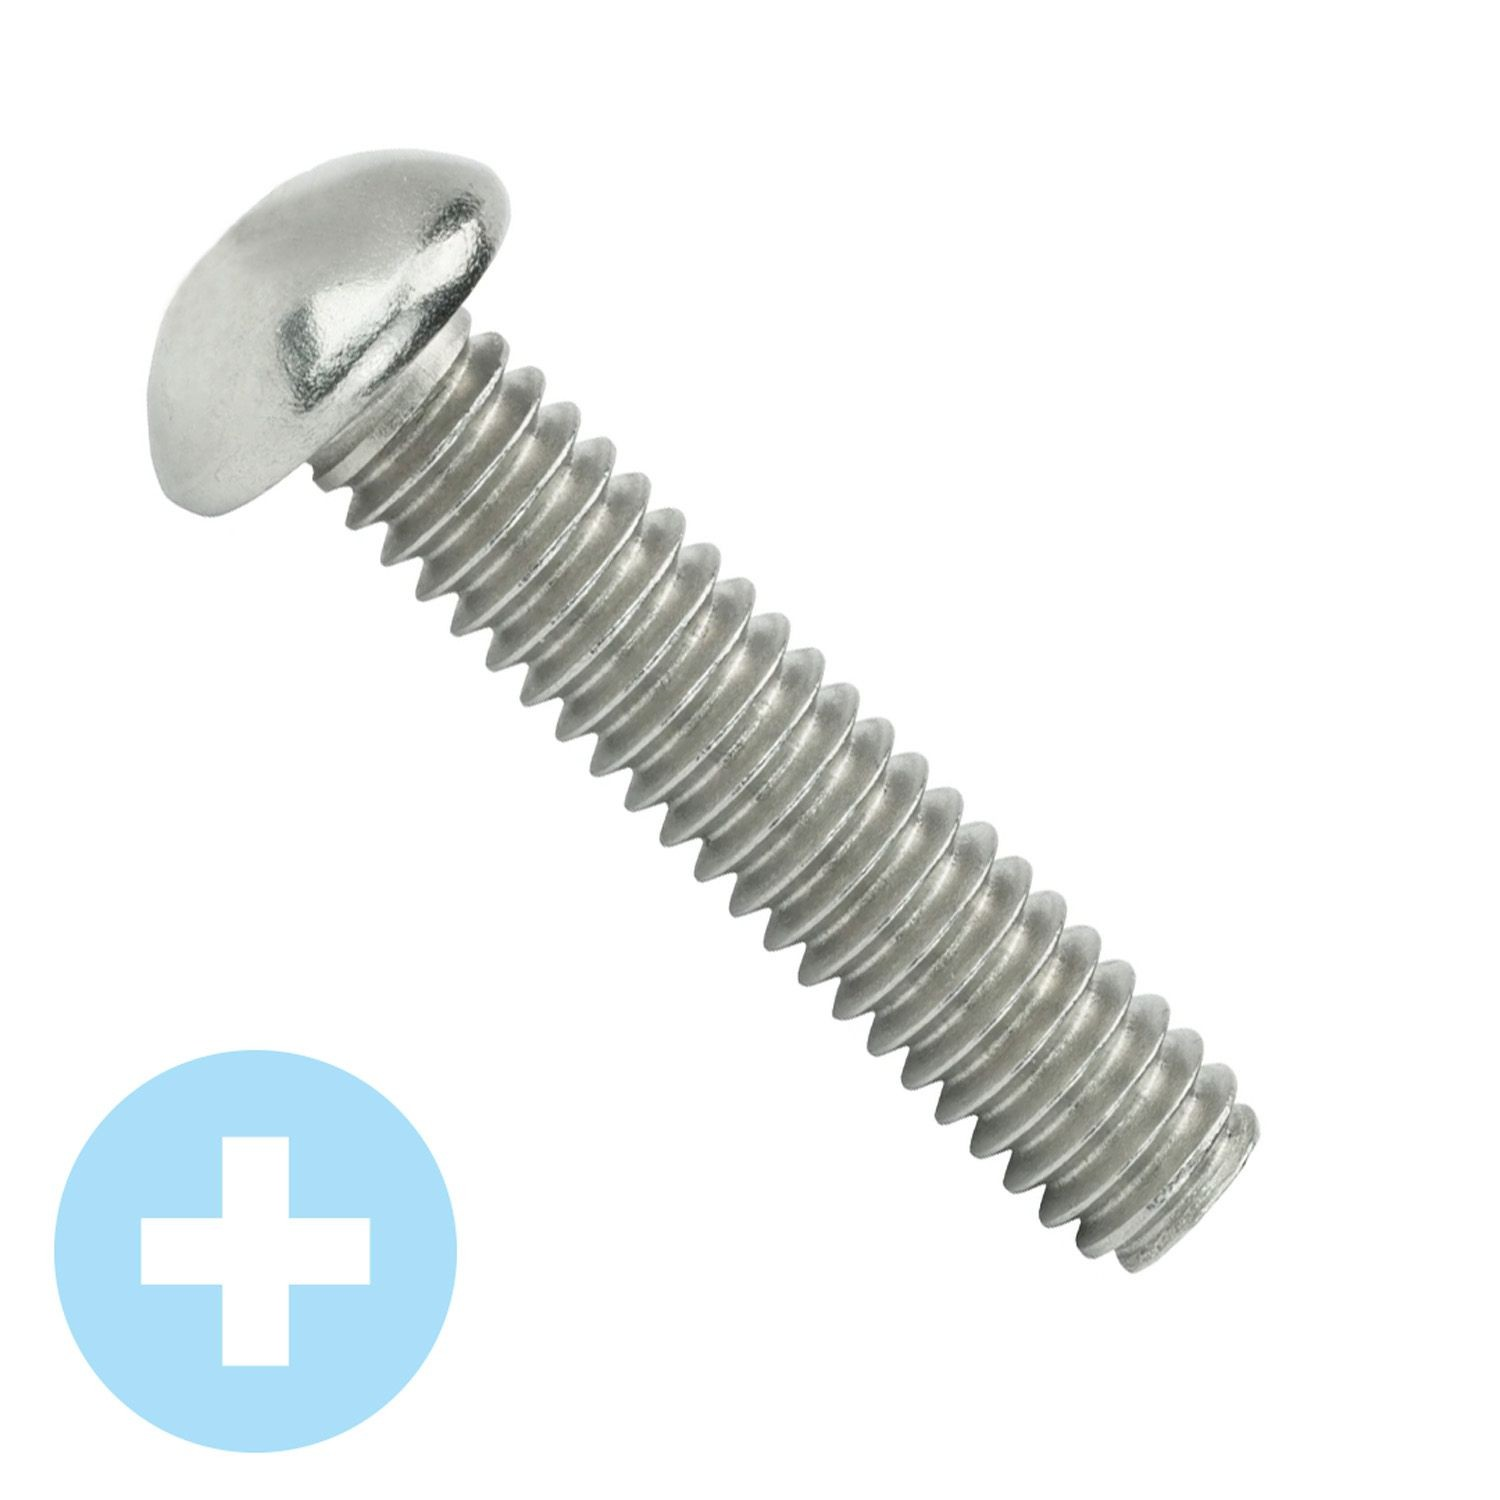 "#12-24 x 1-1/2"" Stainless Steel Phillips Round Head Machine Screw 18-8"